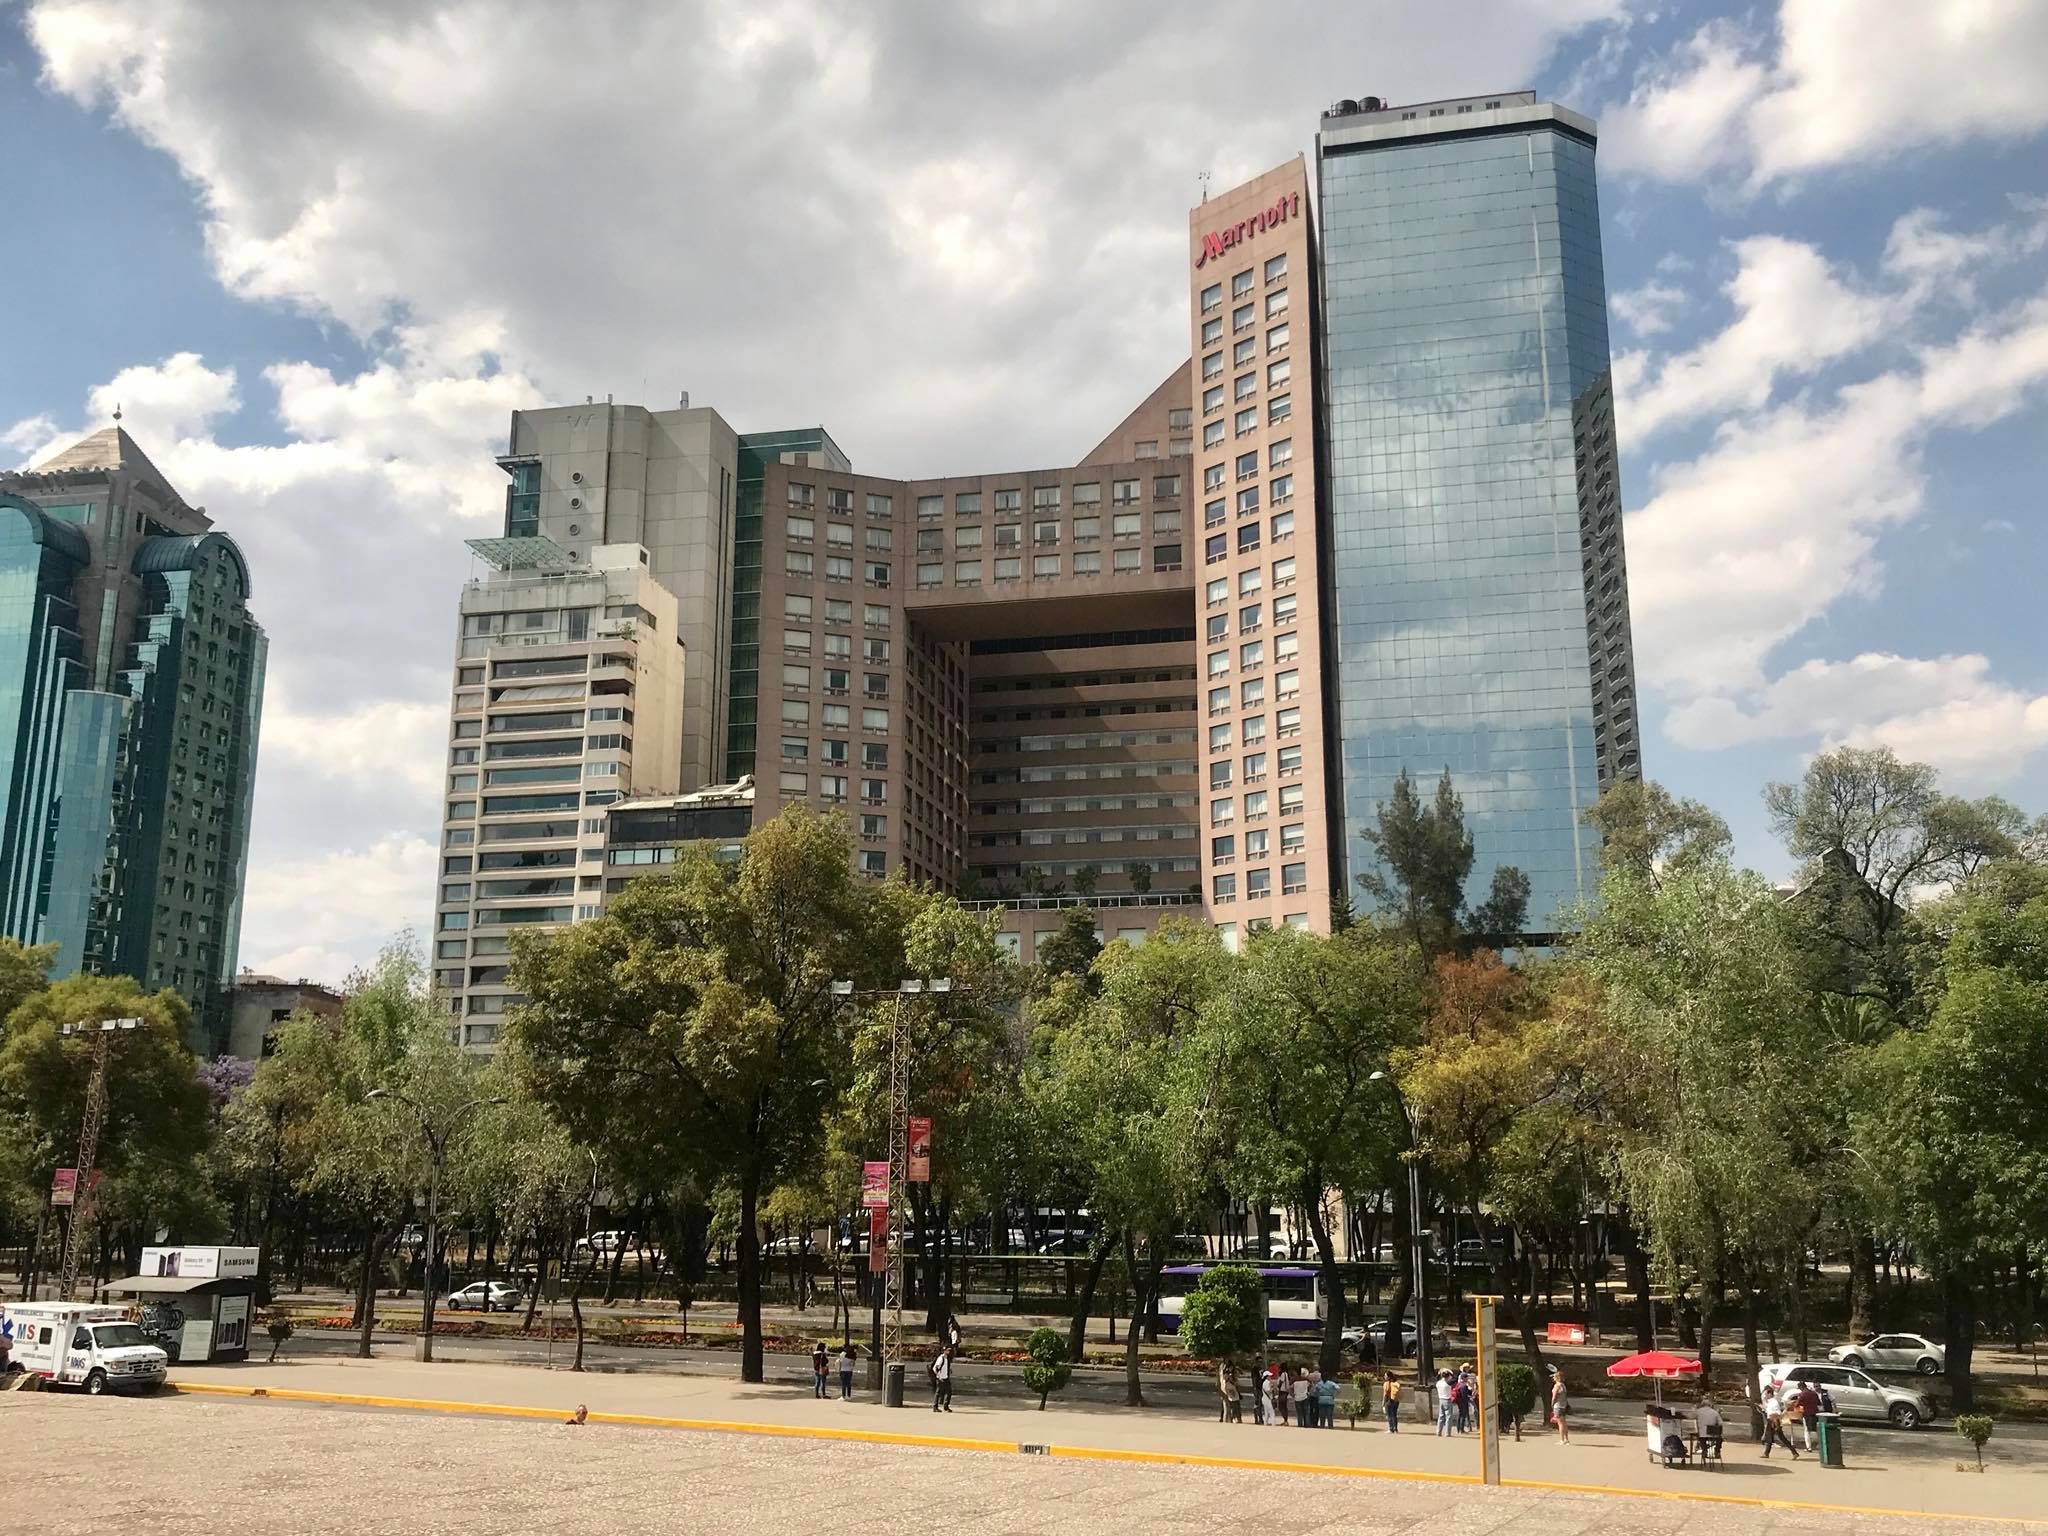 Hotel Marriot de Reforma, CDMX